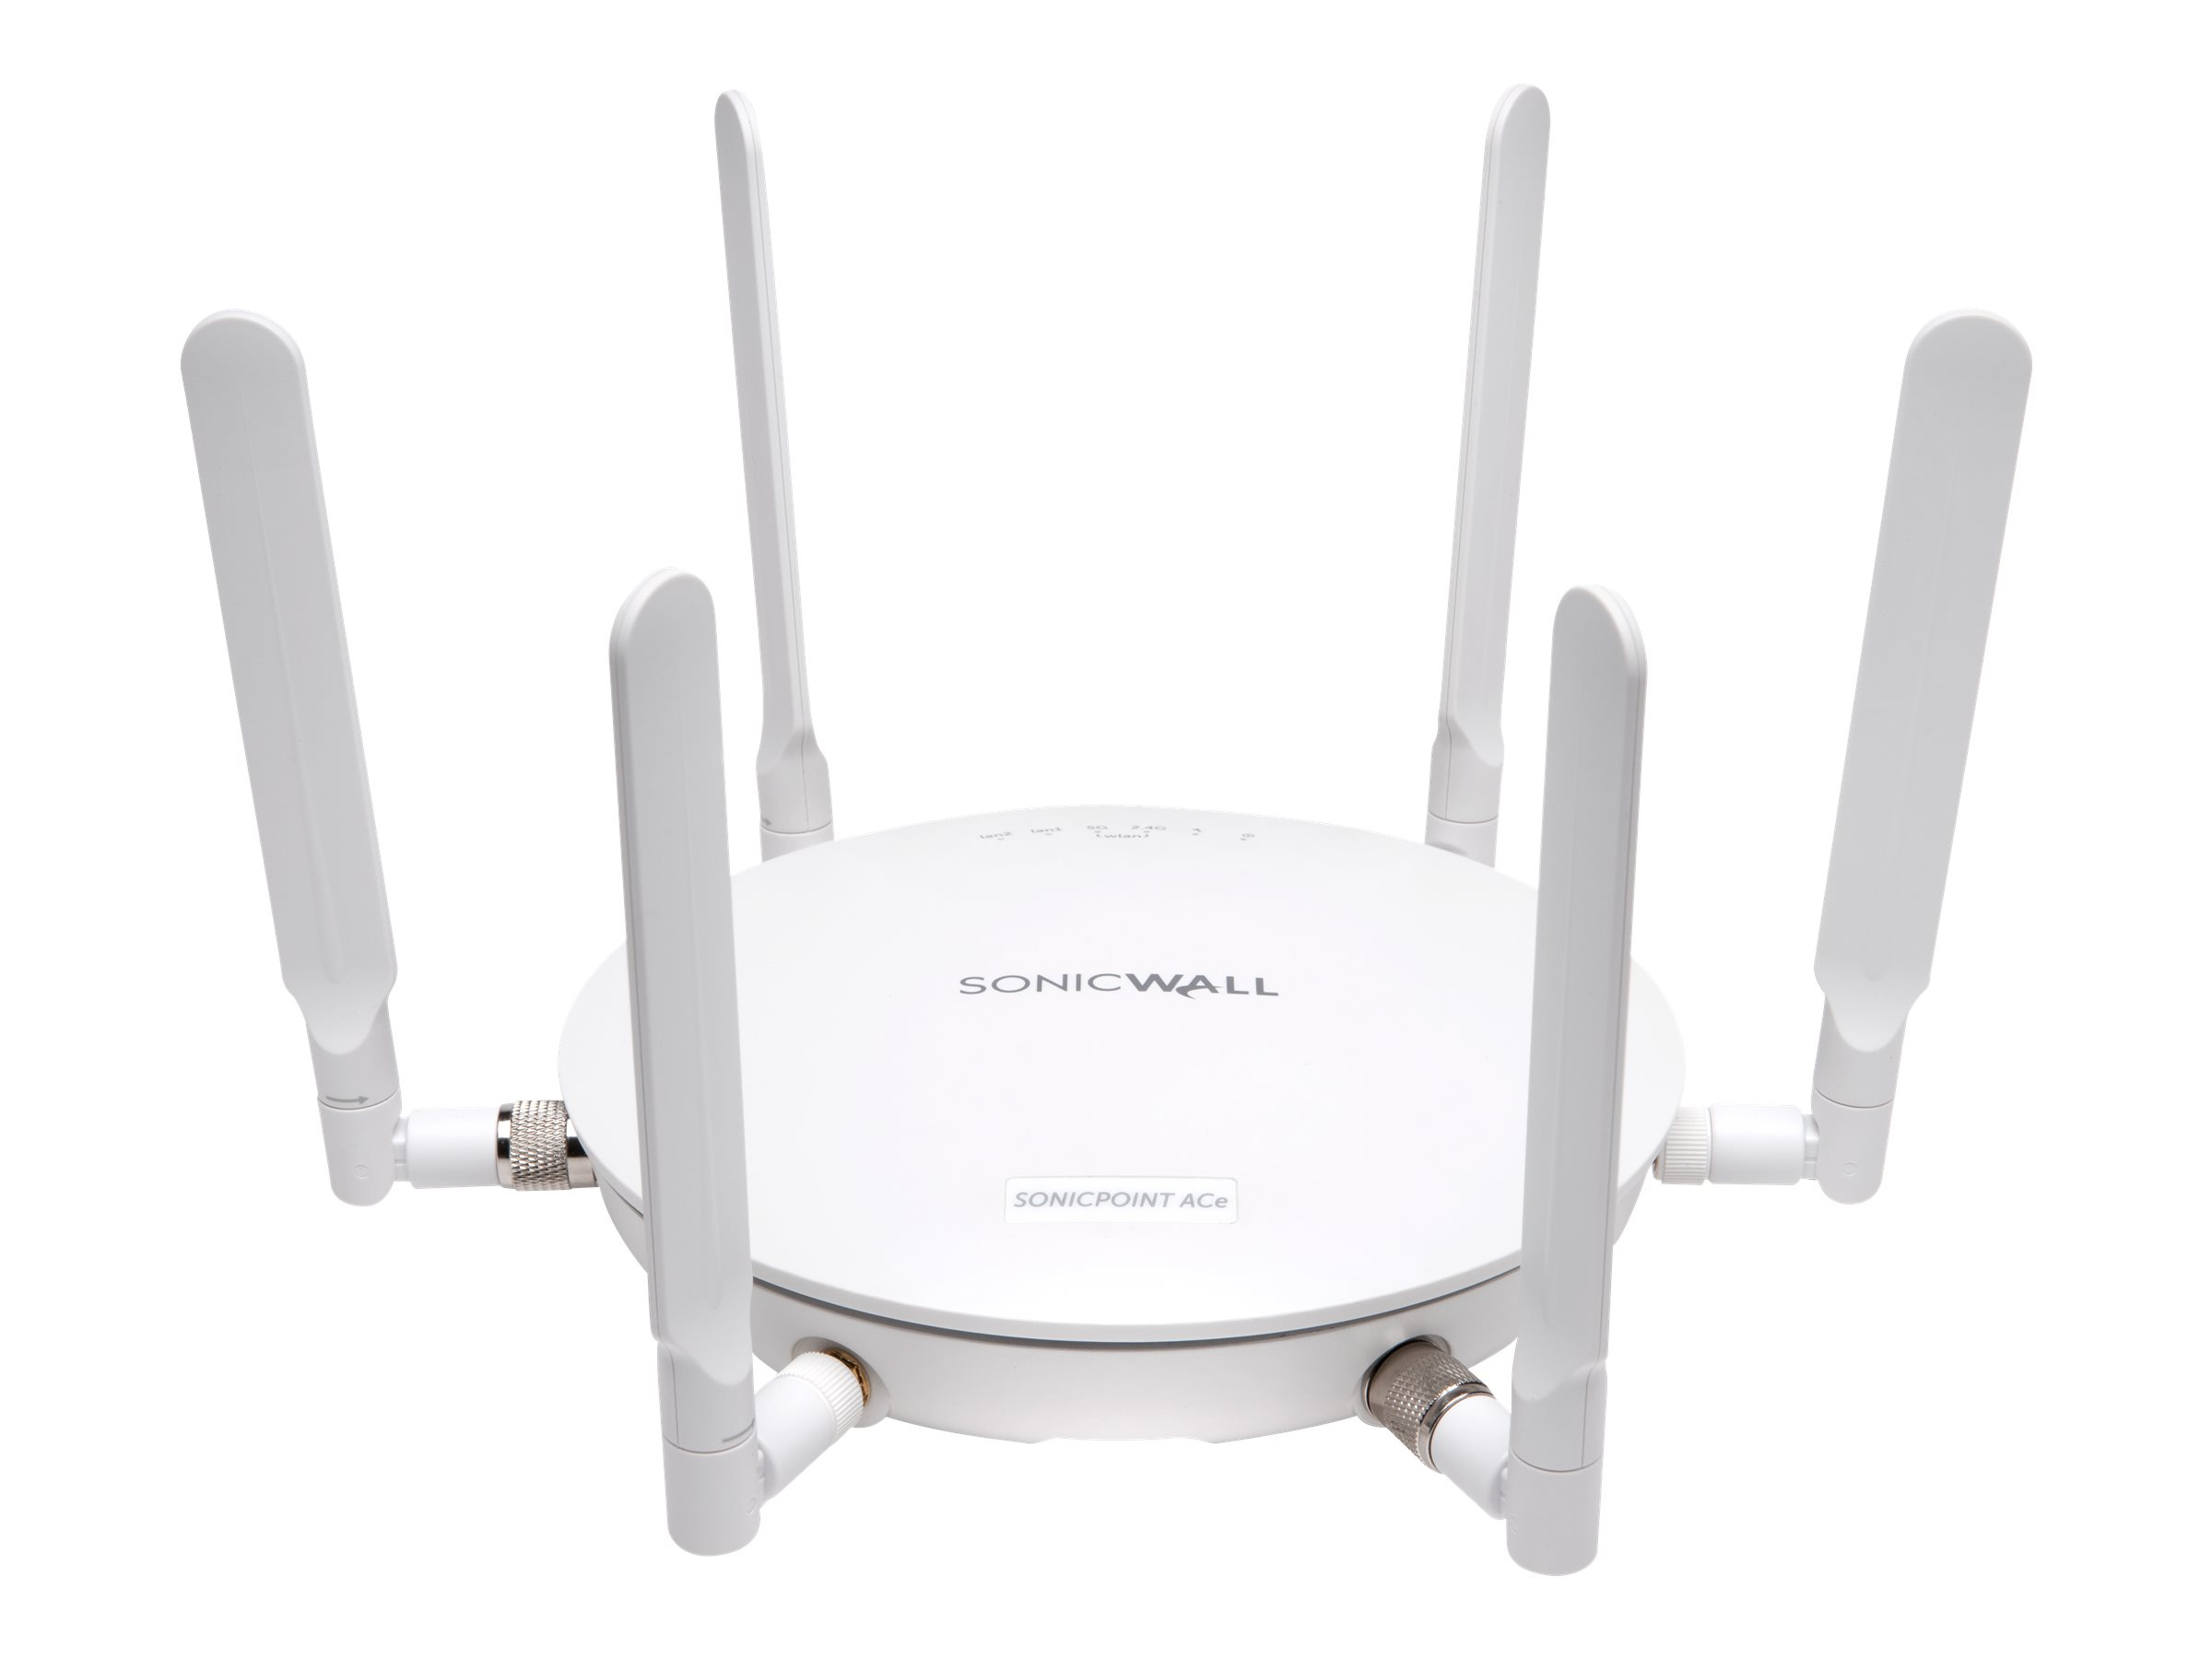 SonicWall SonicPoint ACe - Funkbasisstation - mit Dynamic Support 24X7 für 3 Jahre - Wi-Fi - Dualband - SonicWALL Secure Upgrade